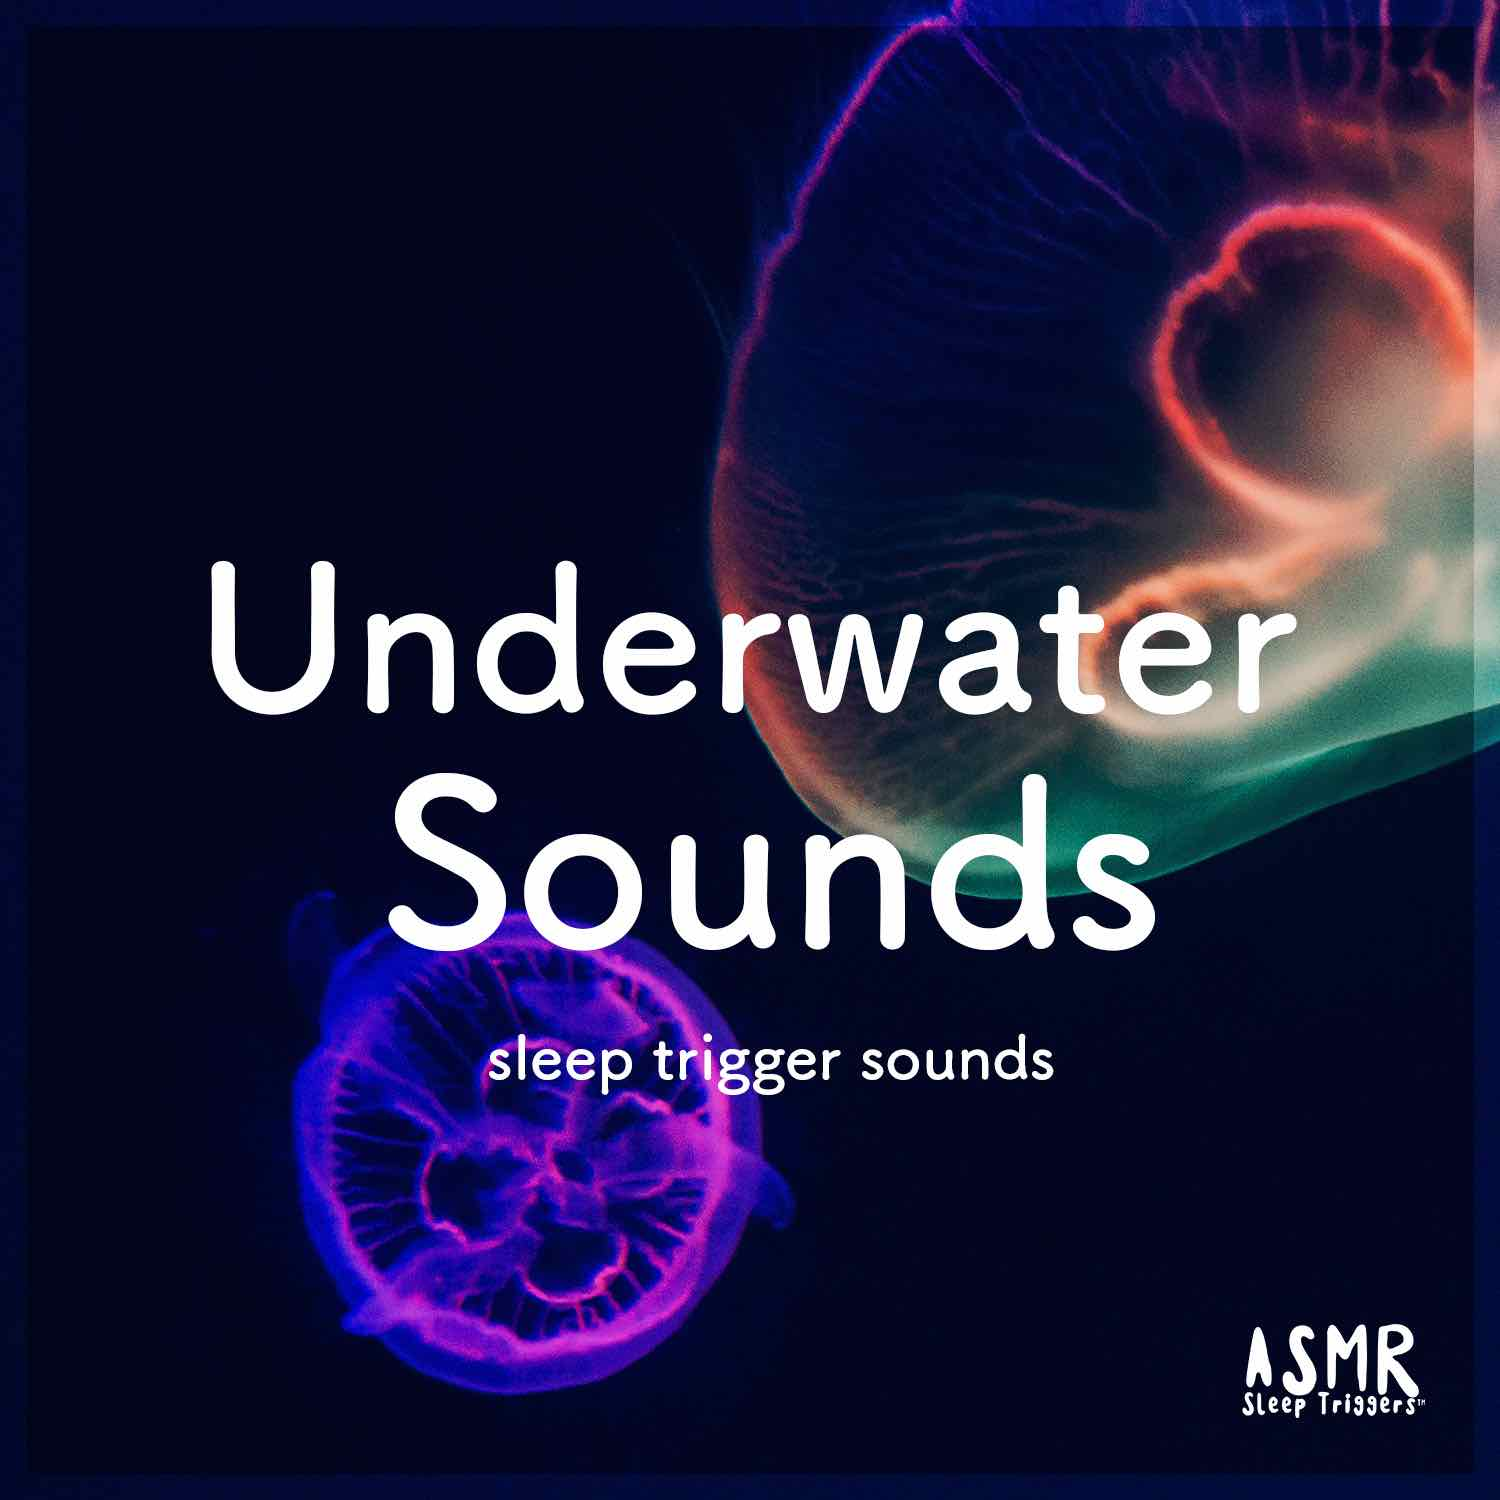 Underwater Sounds 02_small.jpg